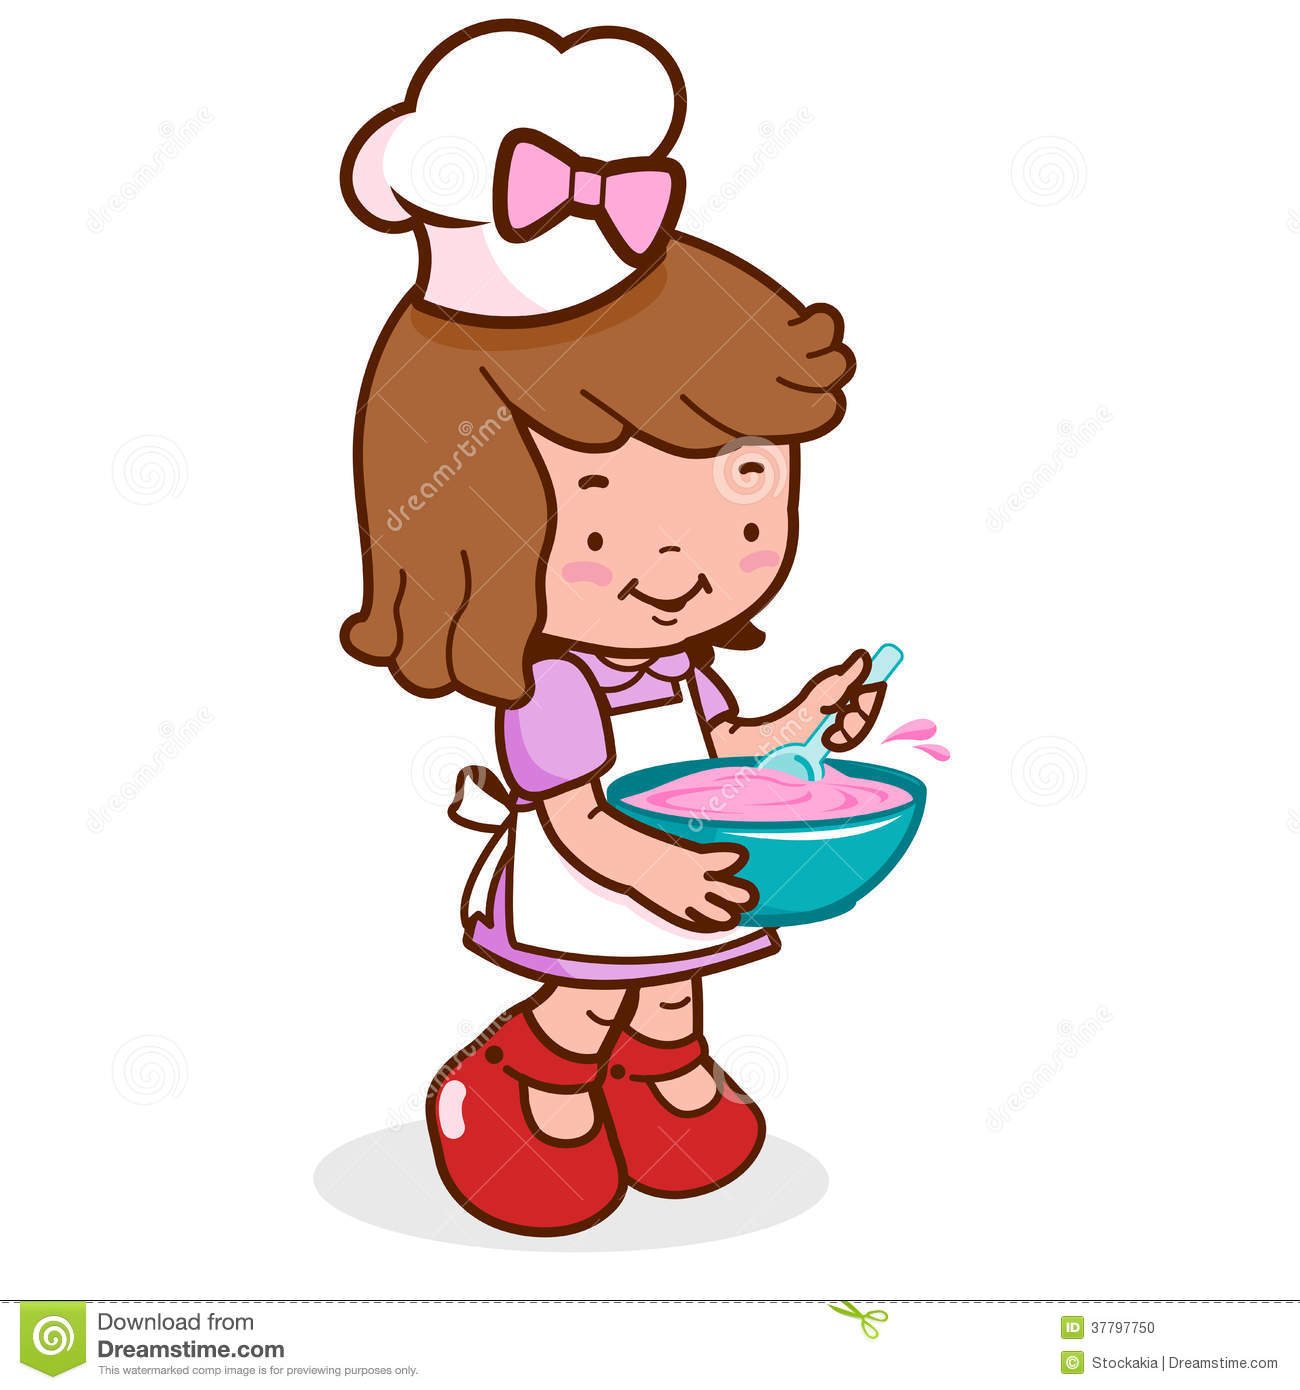 Kitchen chef clipart girl jpg black and white download Little Girl Chef Clipart - Clipart Kid jpg black and white download